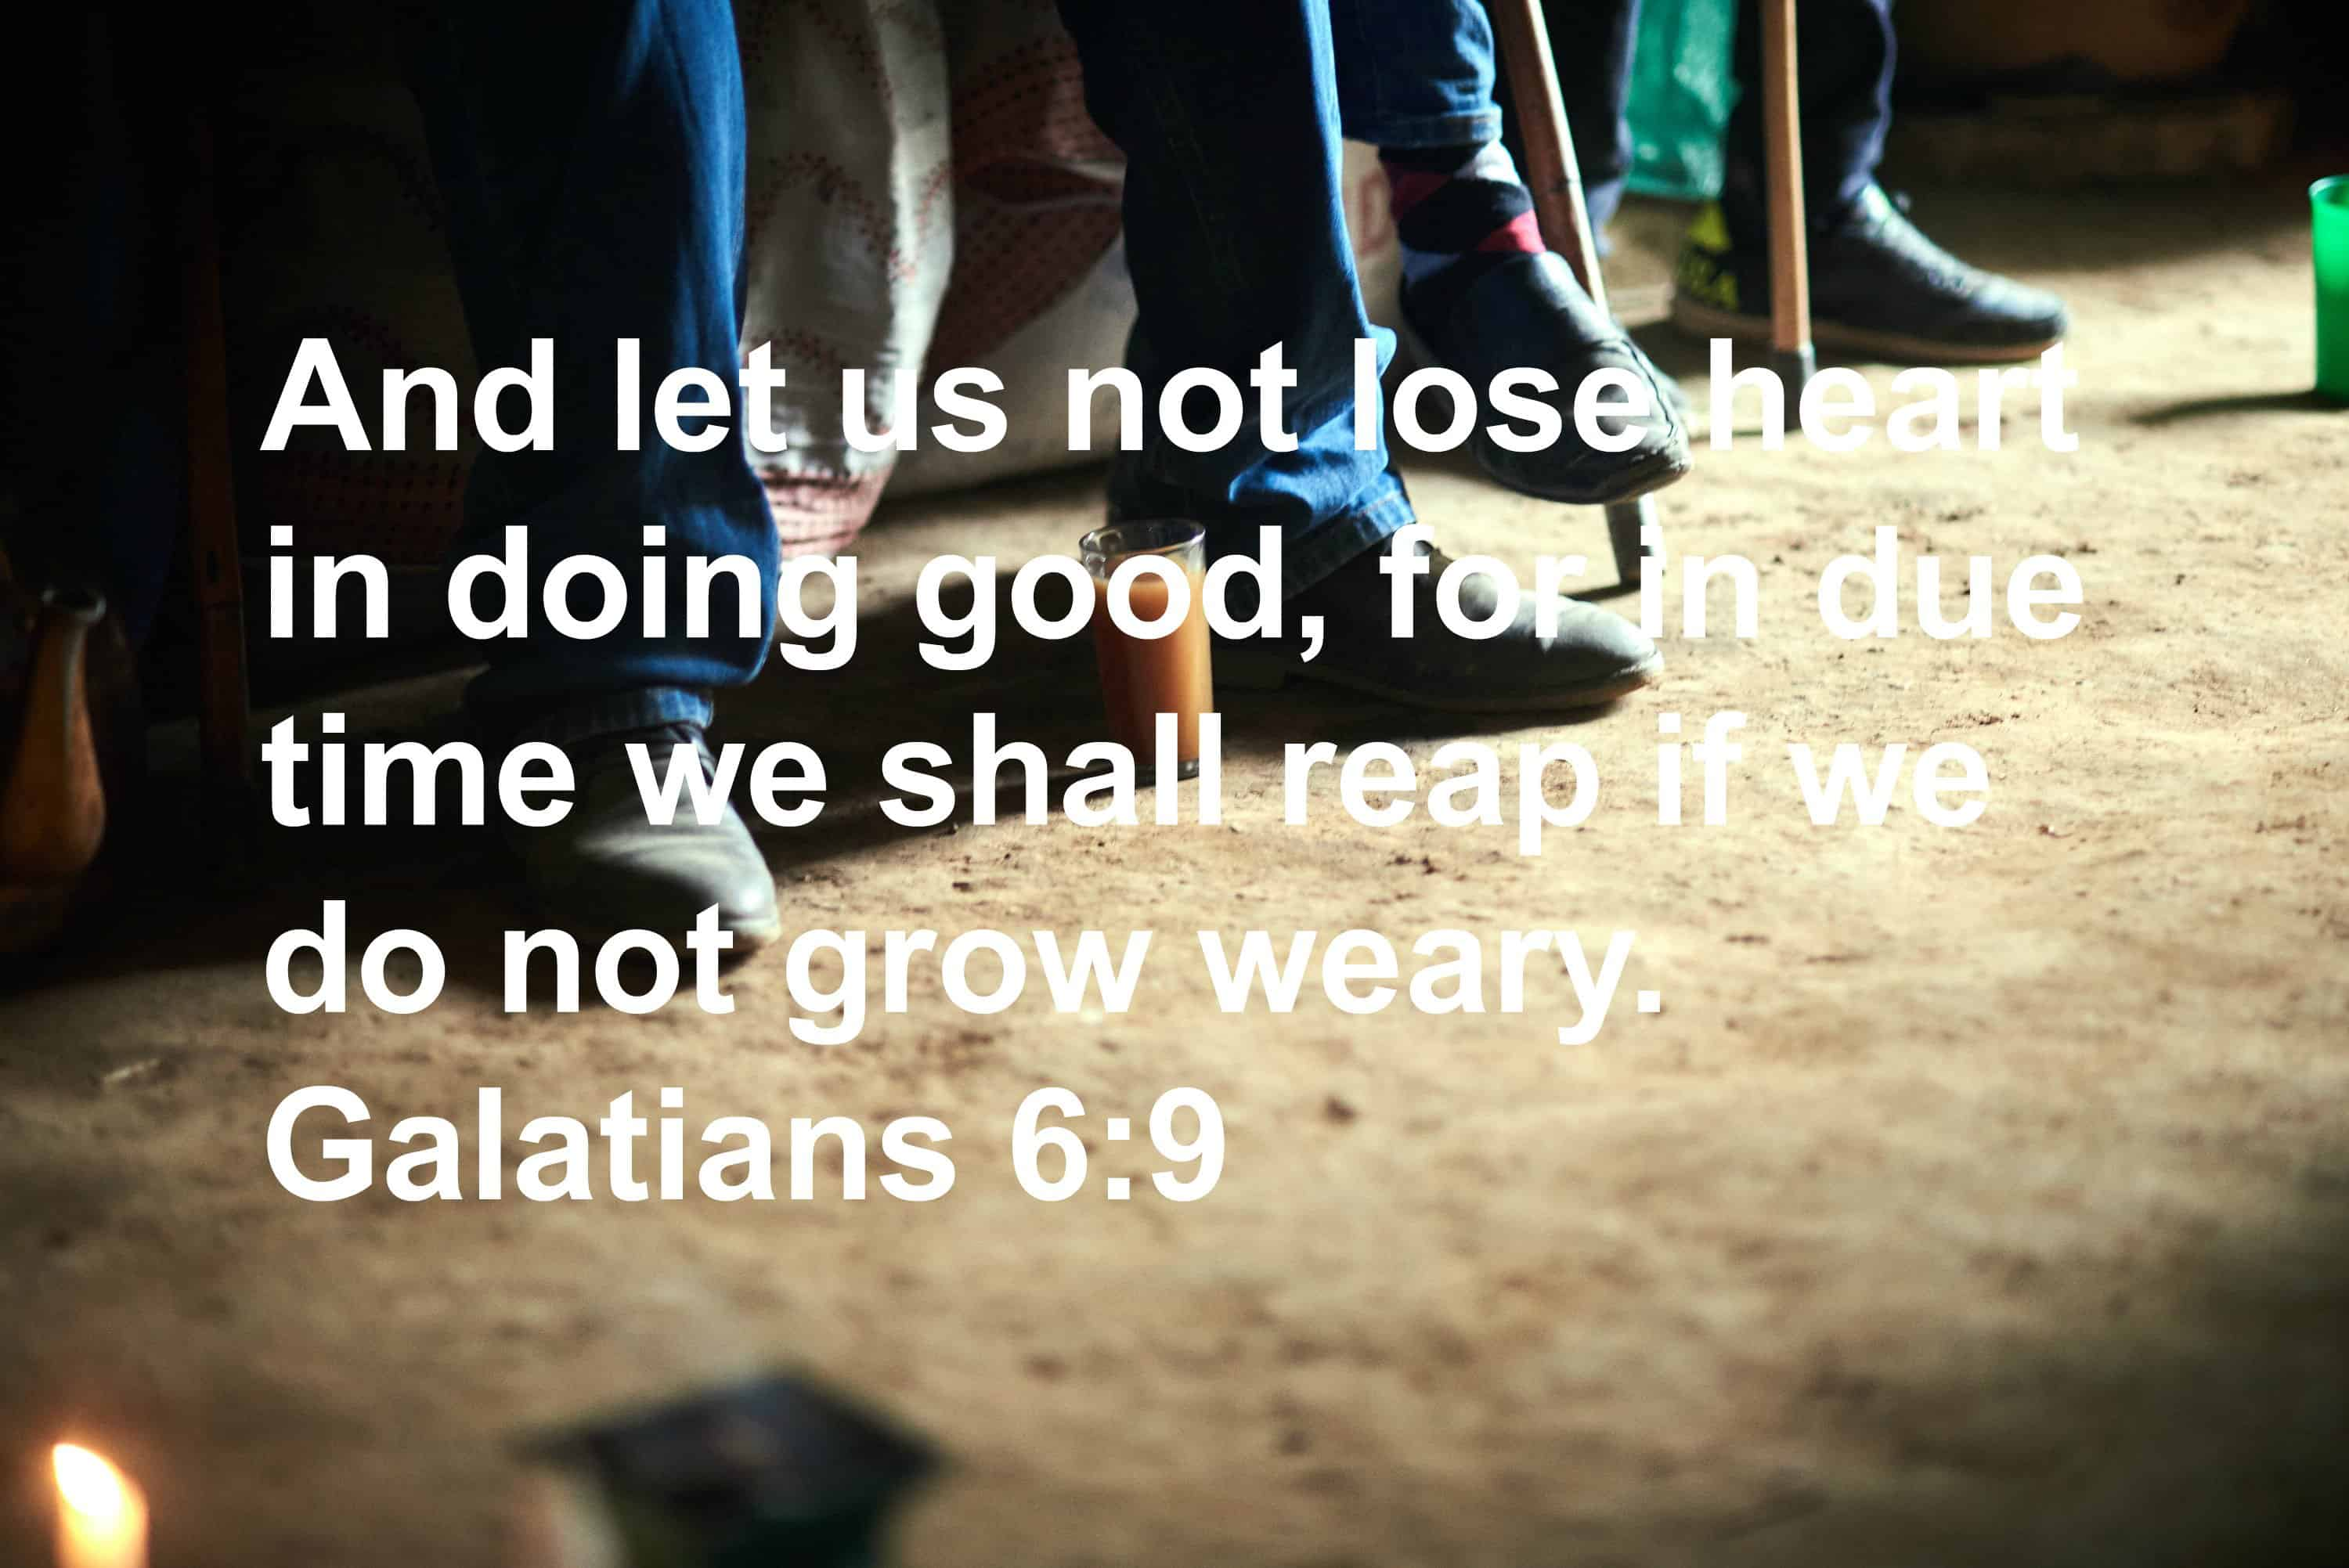 And let us not lose heart in doing good, for in due time we shall reap if we do not grow weary. – Galatians 6:9